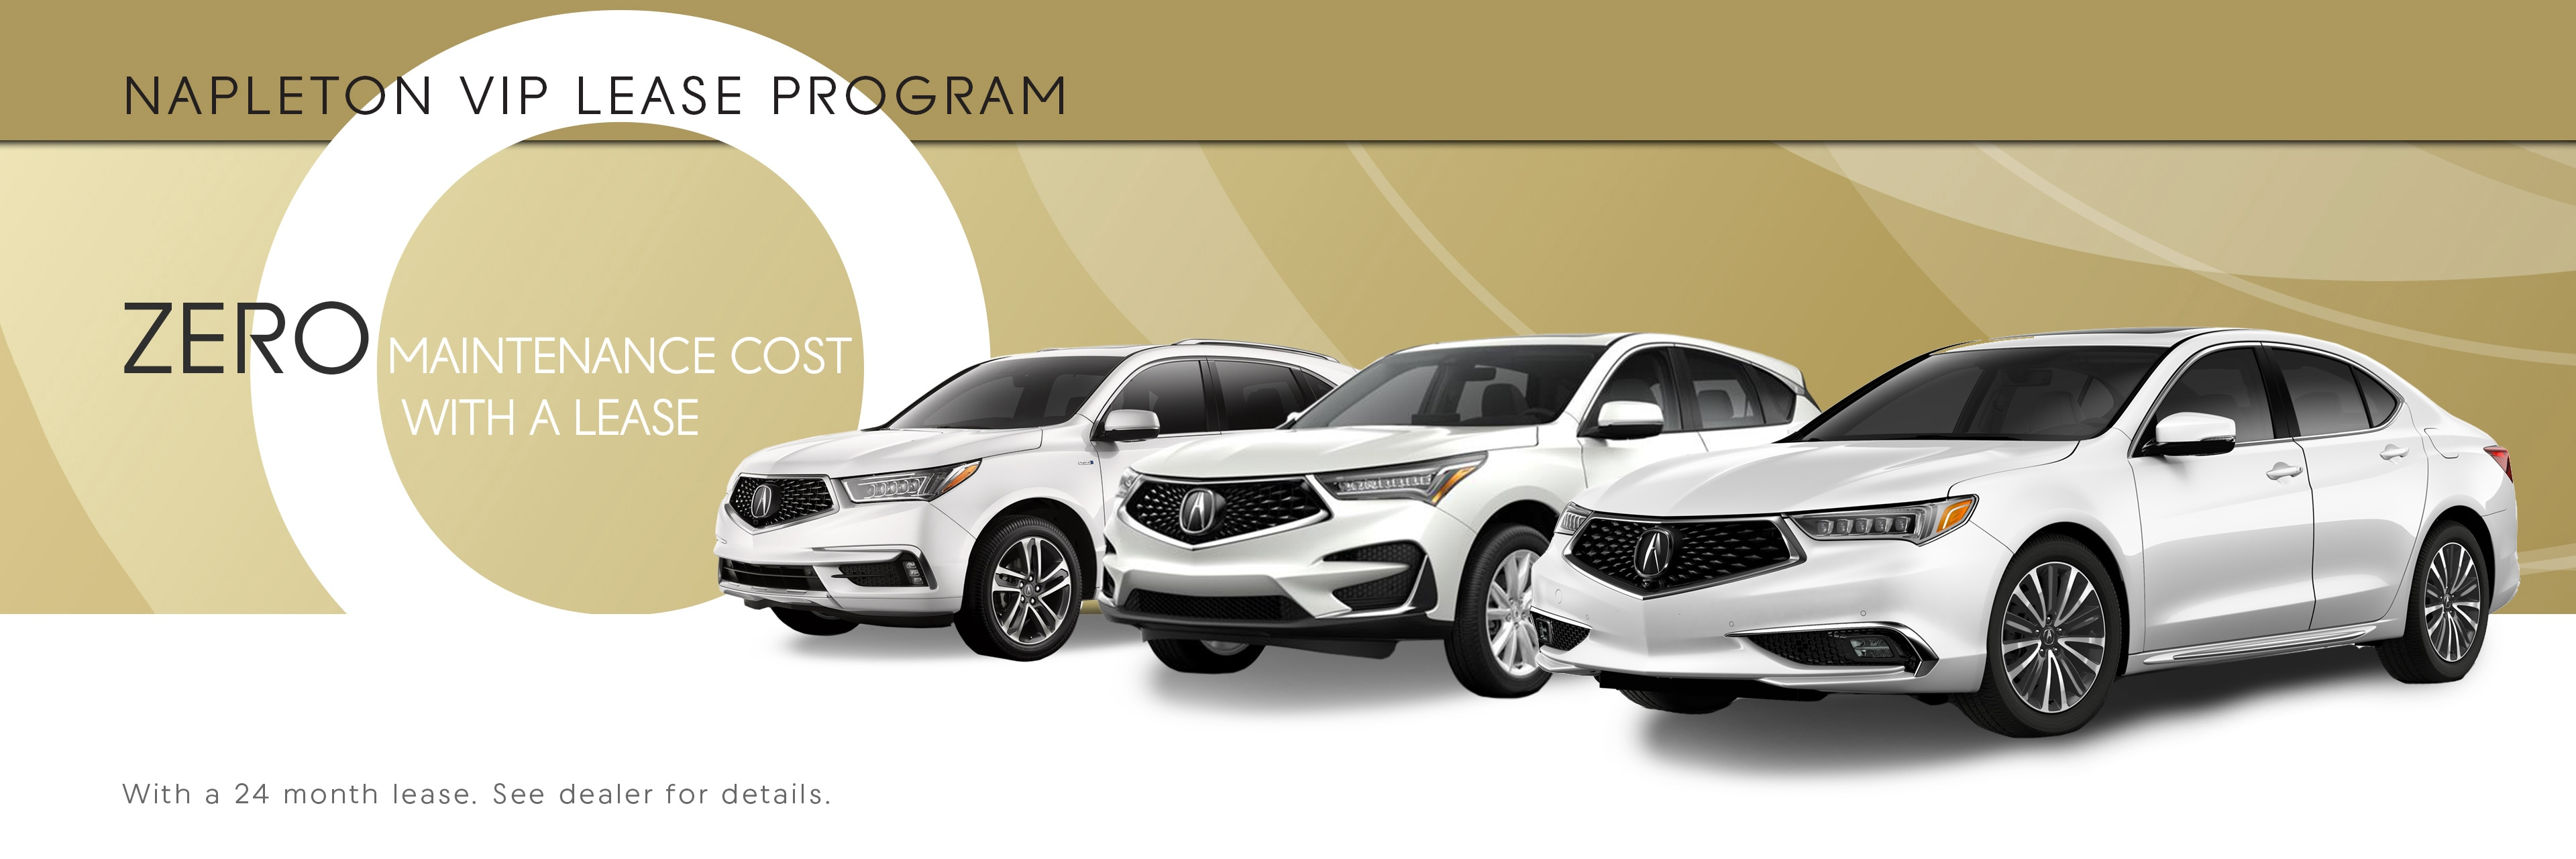 Napleton VIP Acura Lease Program